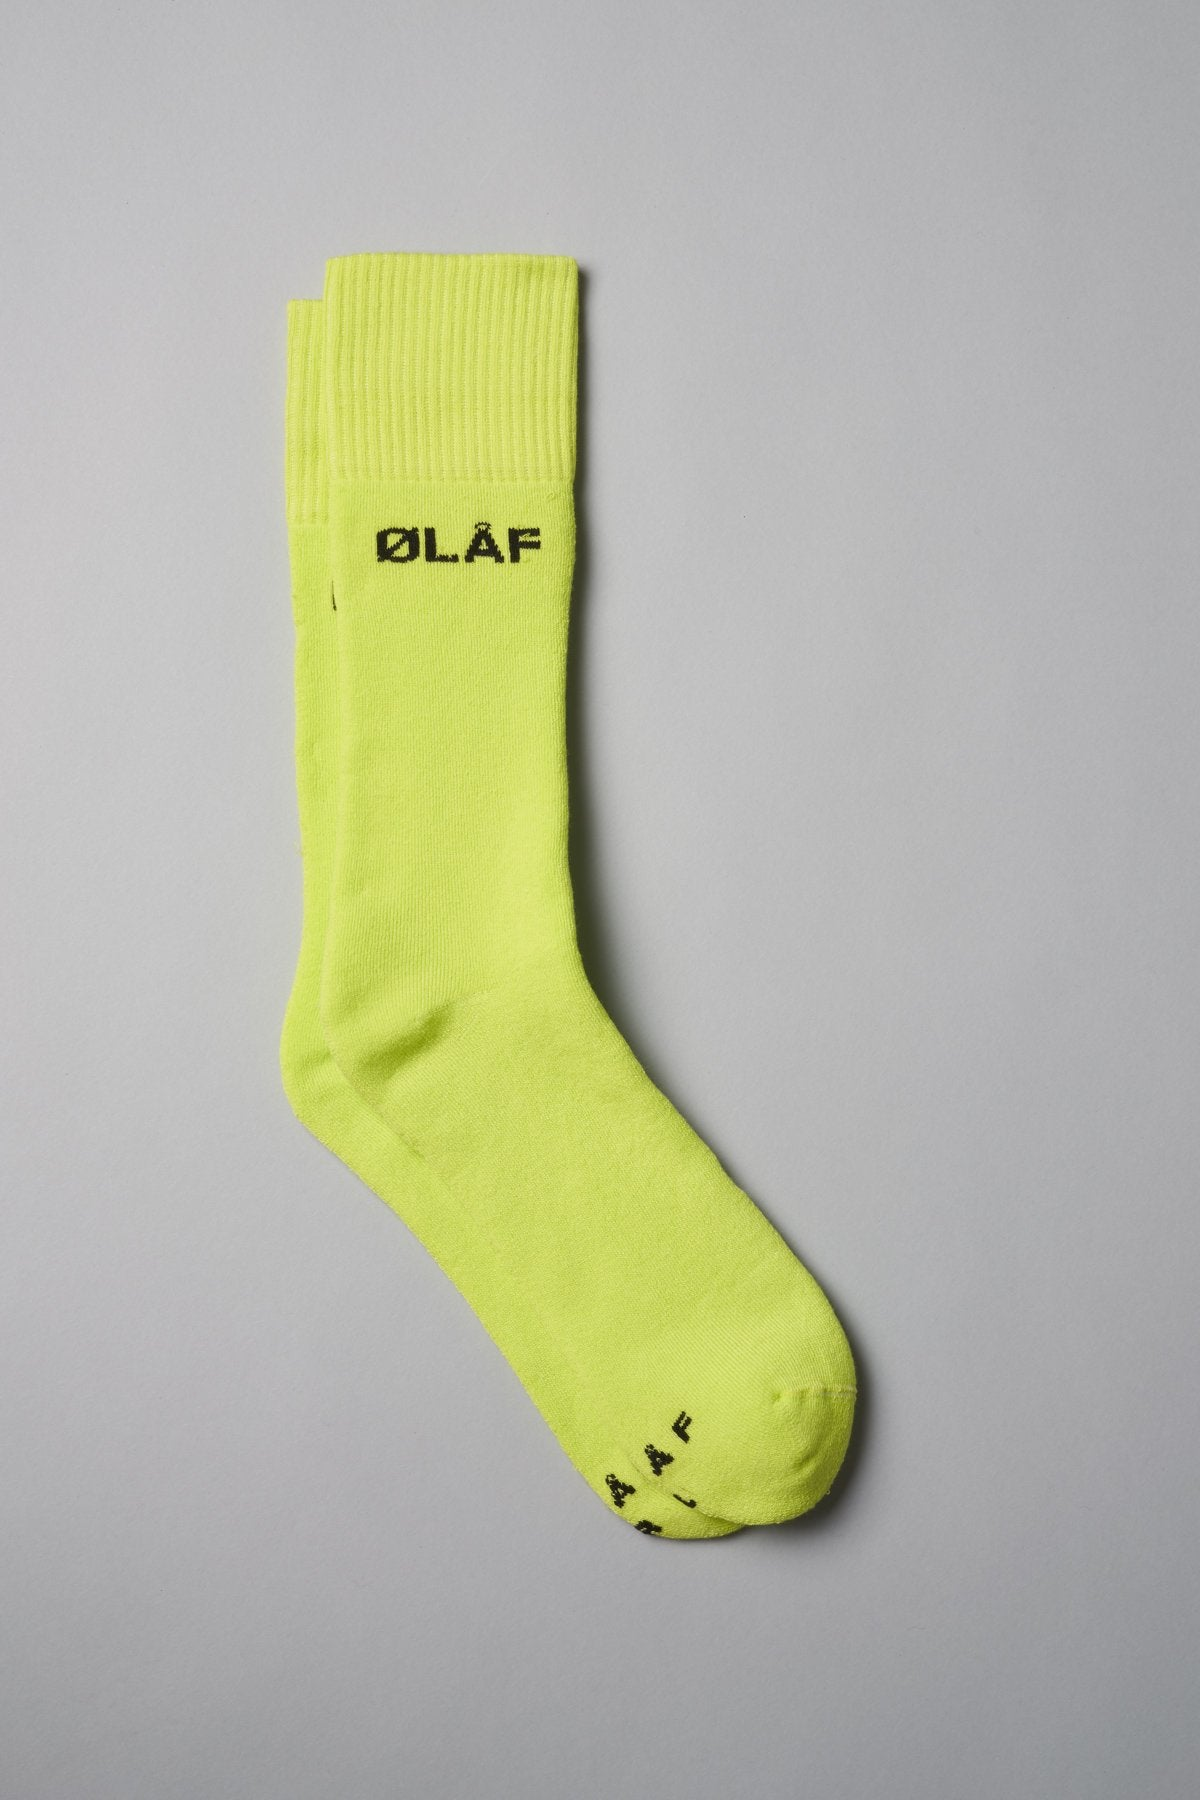 3-Pack ØLÅF Socks Purple / Neon, 75% Portuguese cotton, 23% polyamide, 2% elastane, Logo on ankle and foot, Made in Portugal